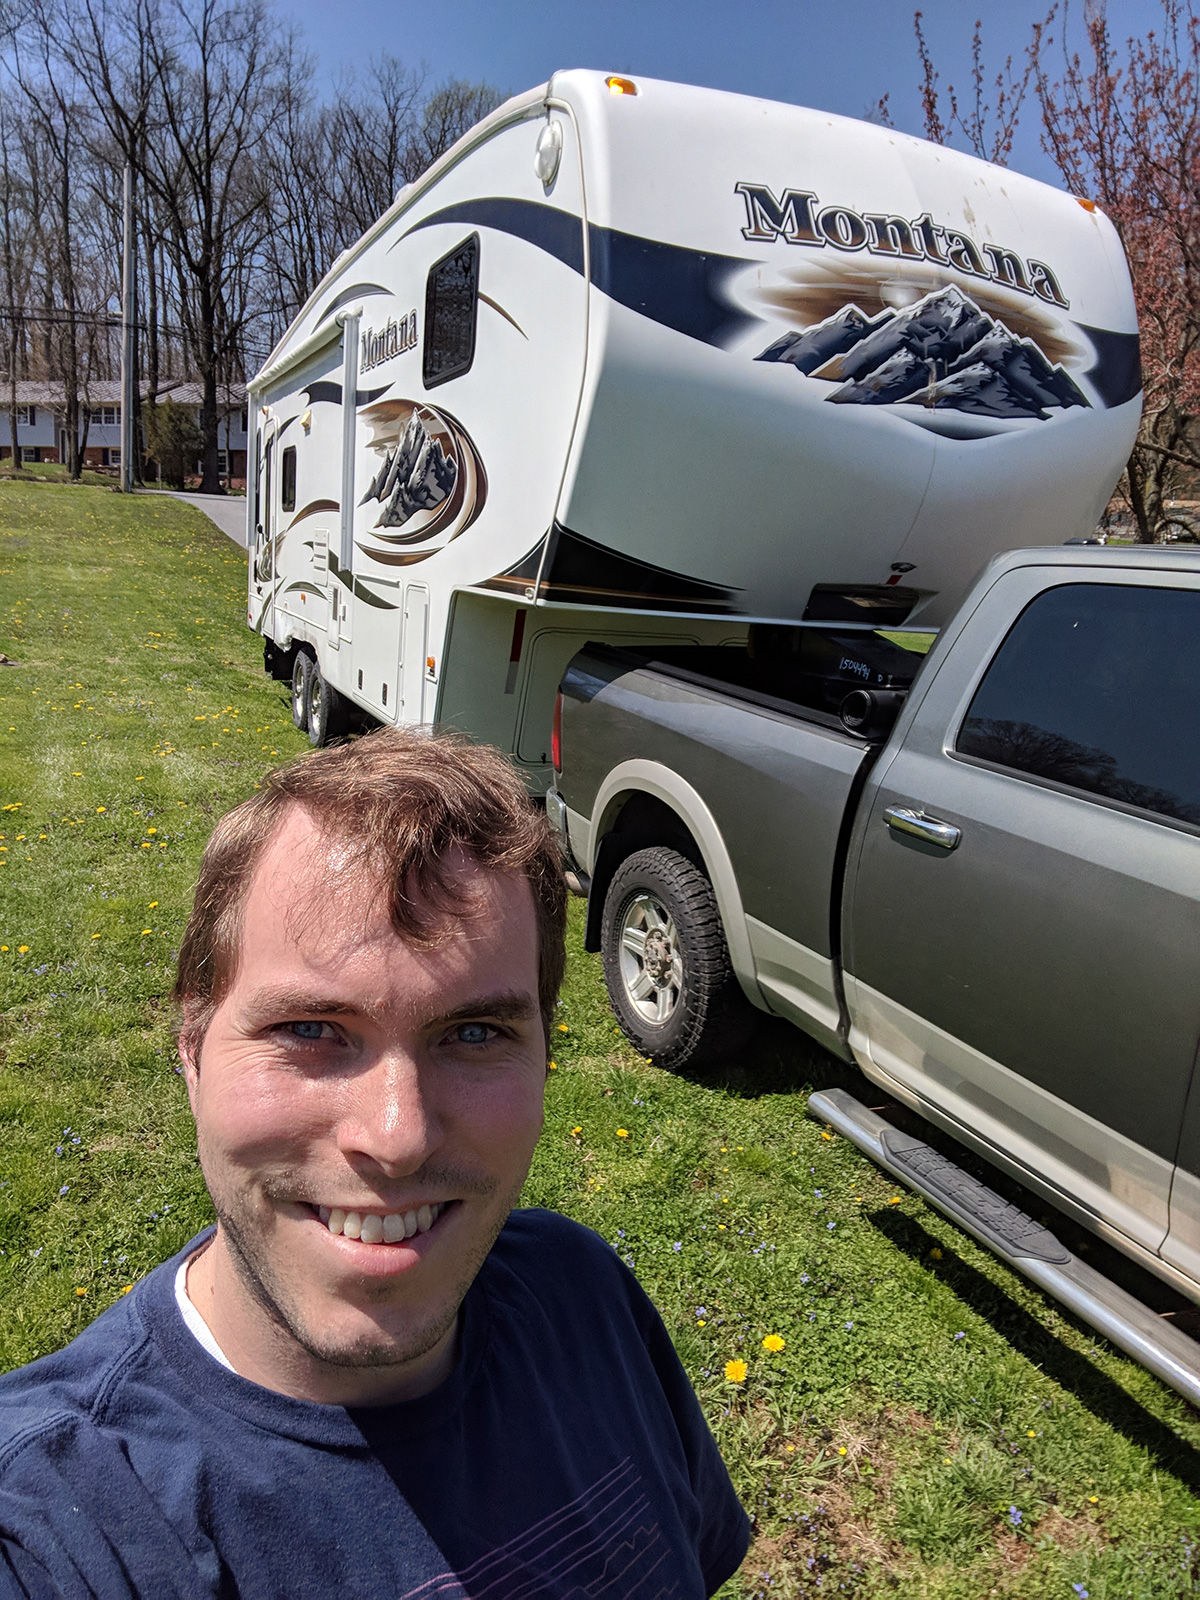 Will after towing the RV